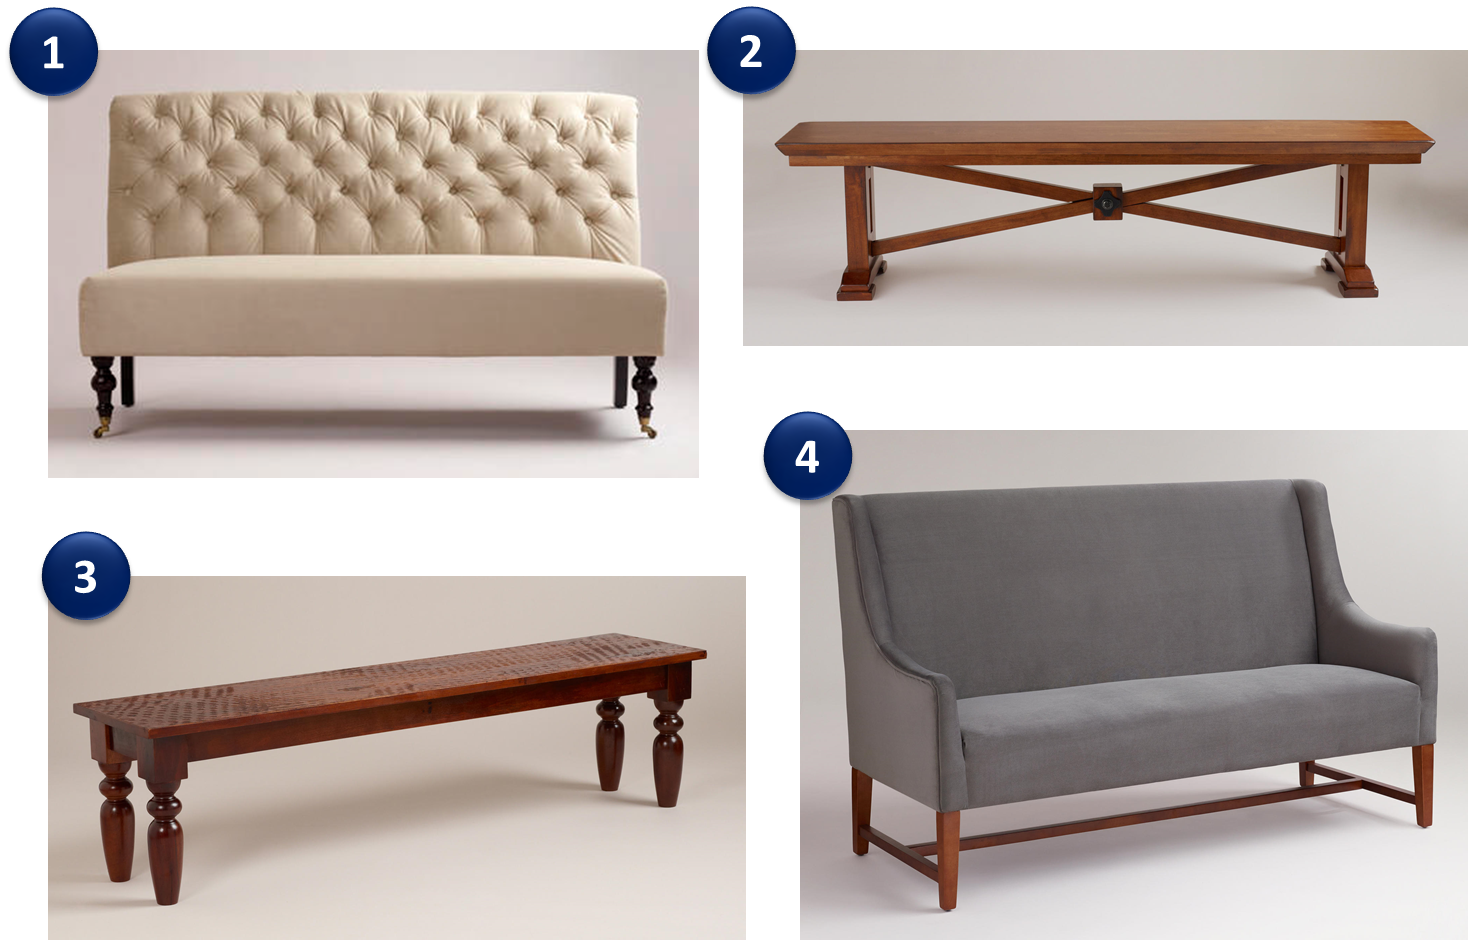 Pleasing Banquette Seating Simply Styled Unemploymentrelief Wooden Chair Designs For Living Room Unemploymentrelieforg